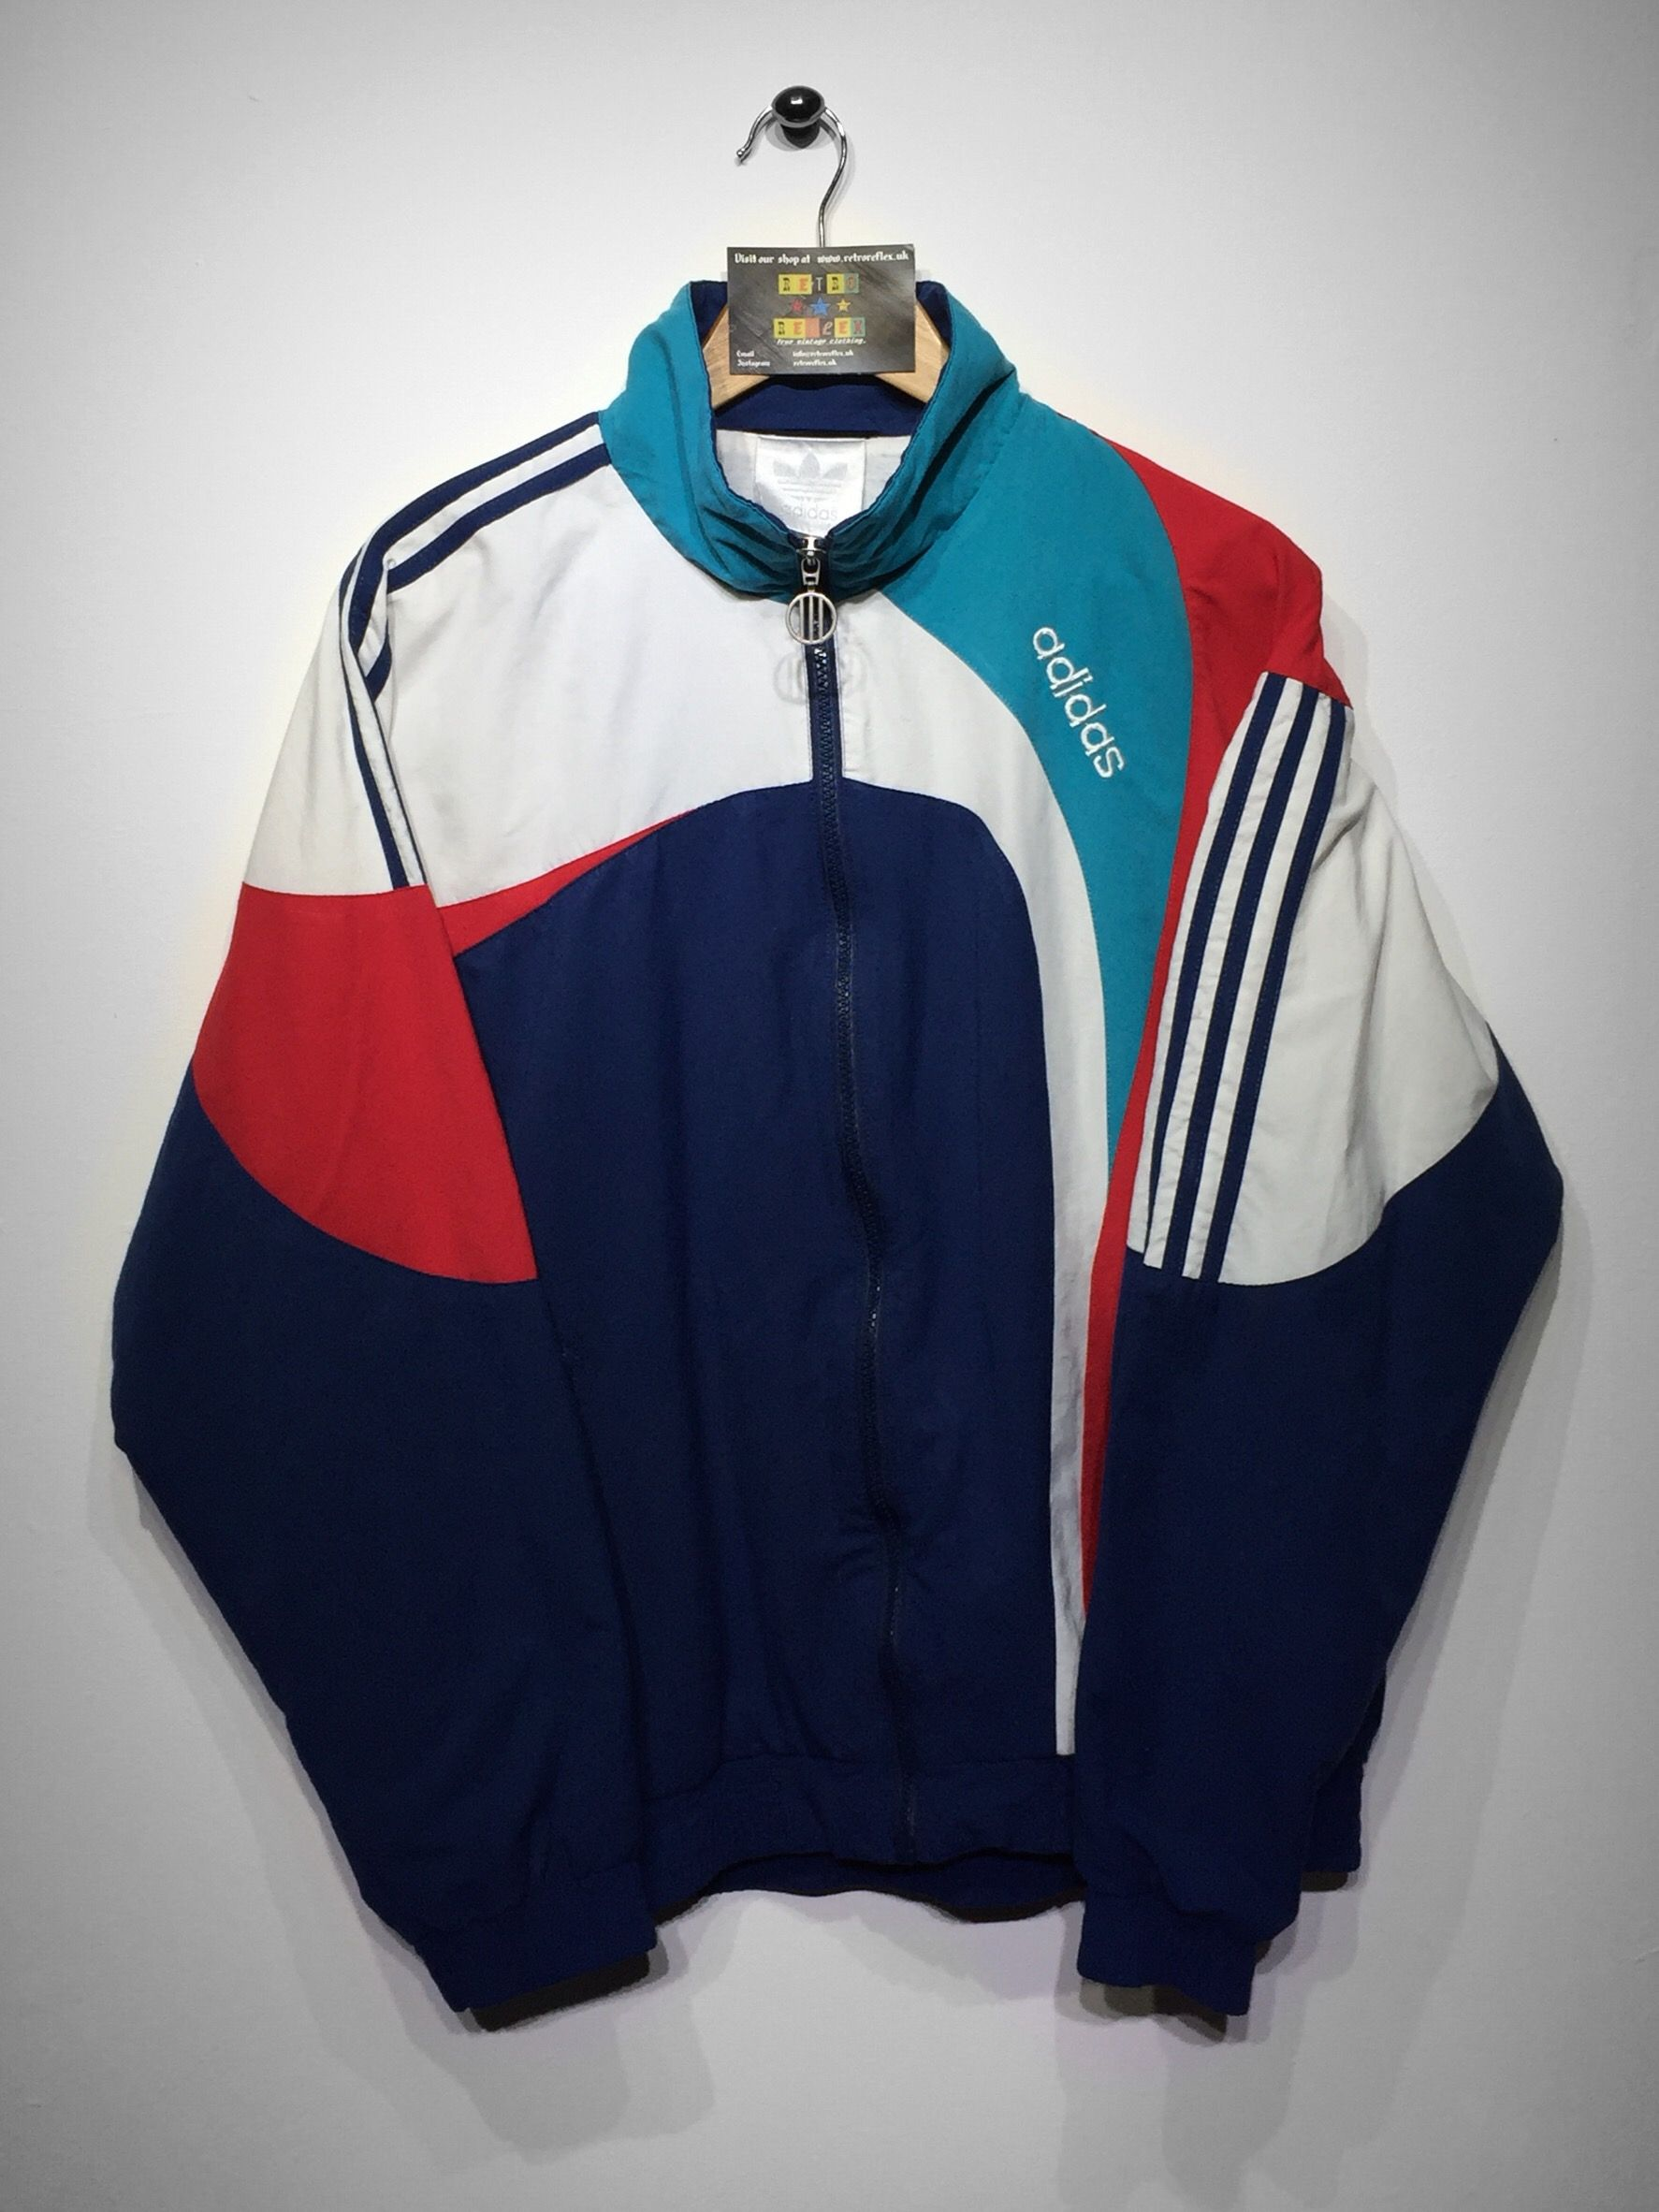 Adidas Track Jacket Fashion Vintage Windbreaker Retro